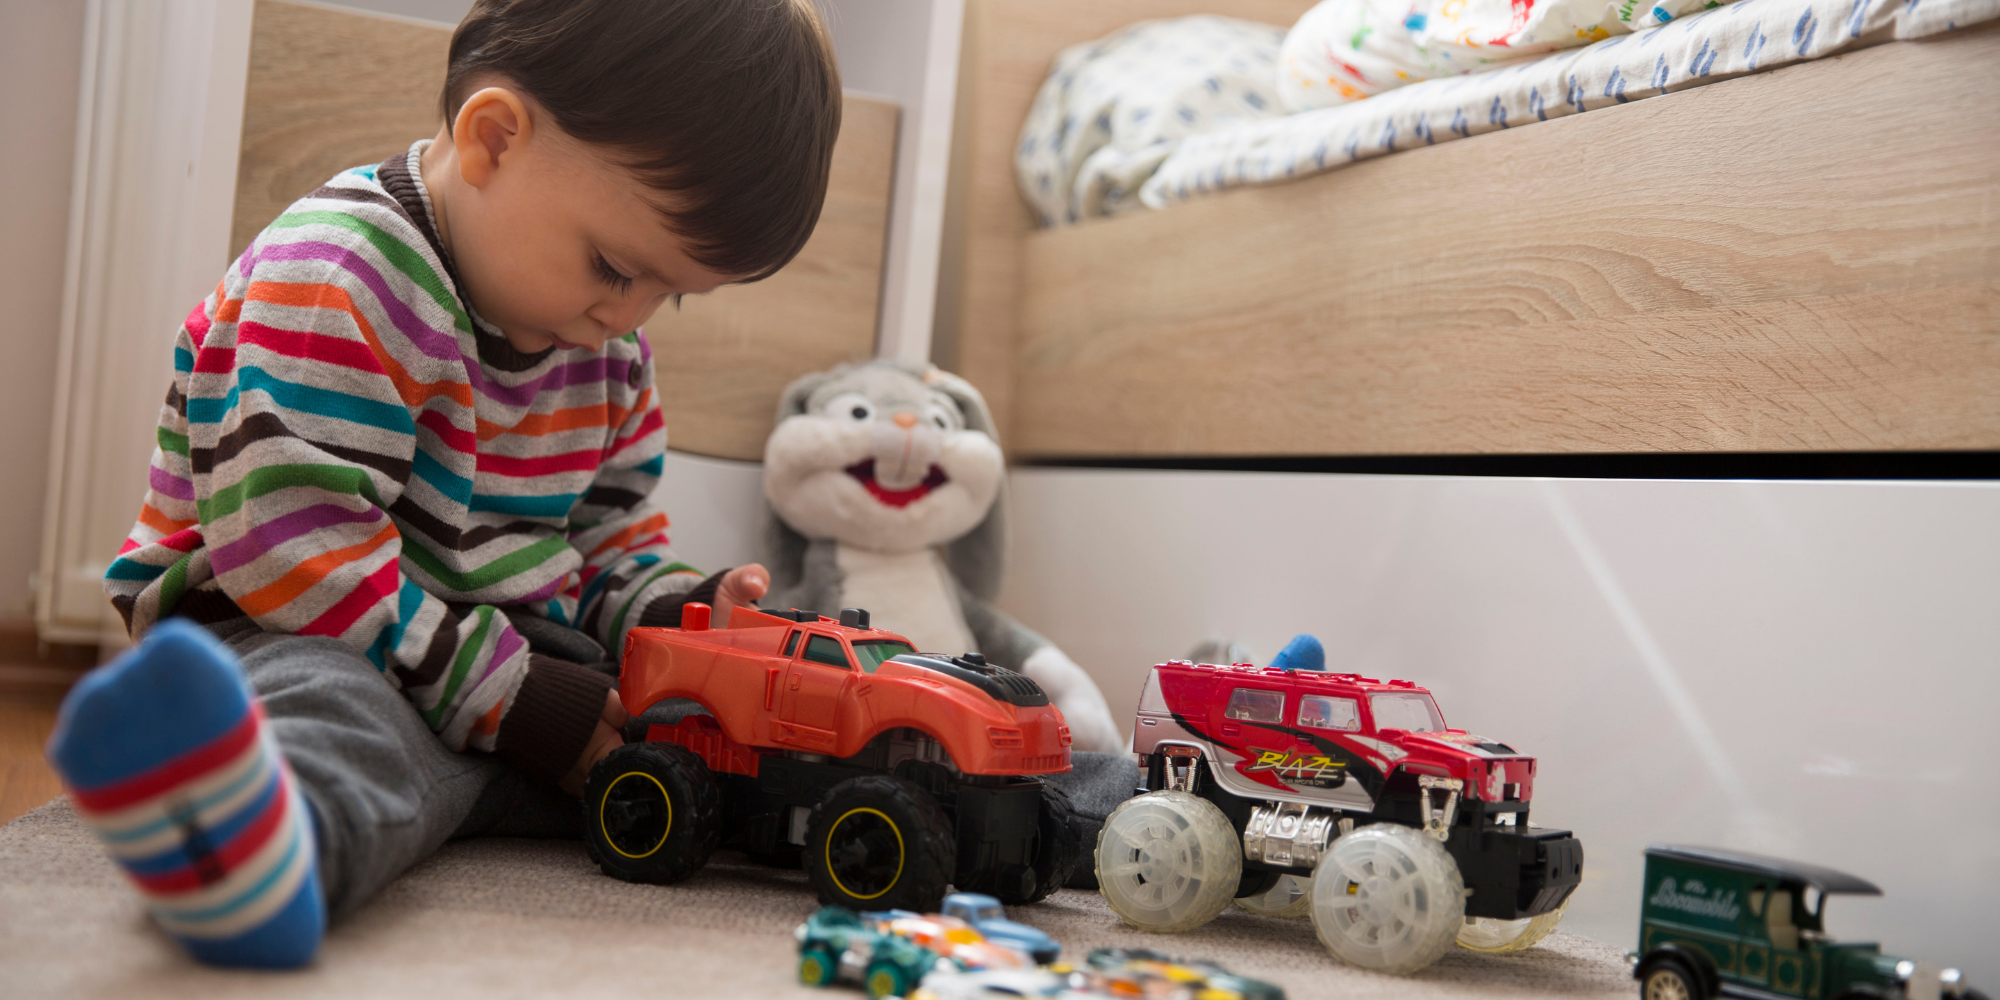 Little boy playing with his toys